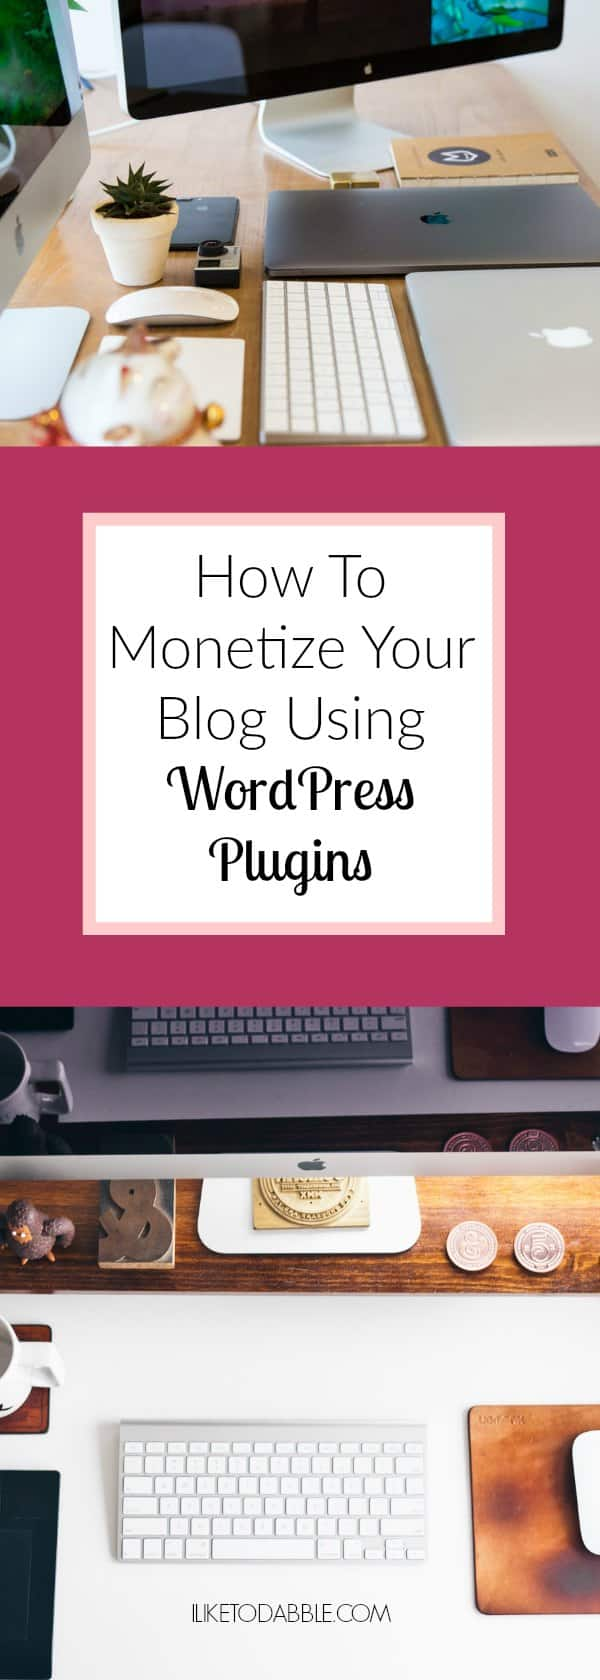 Monetize Your Blog With FREE WordPress Plugins! How to monetize your blog.